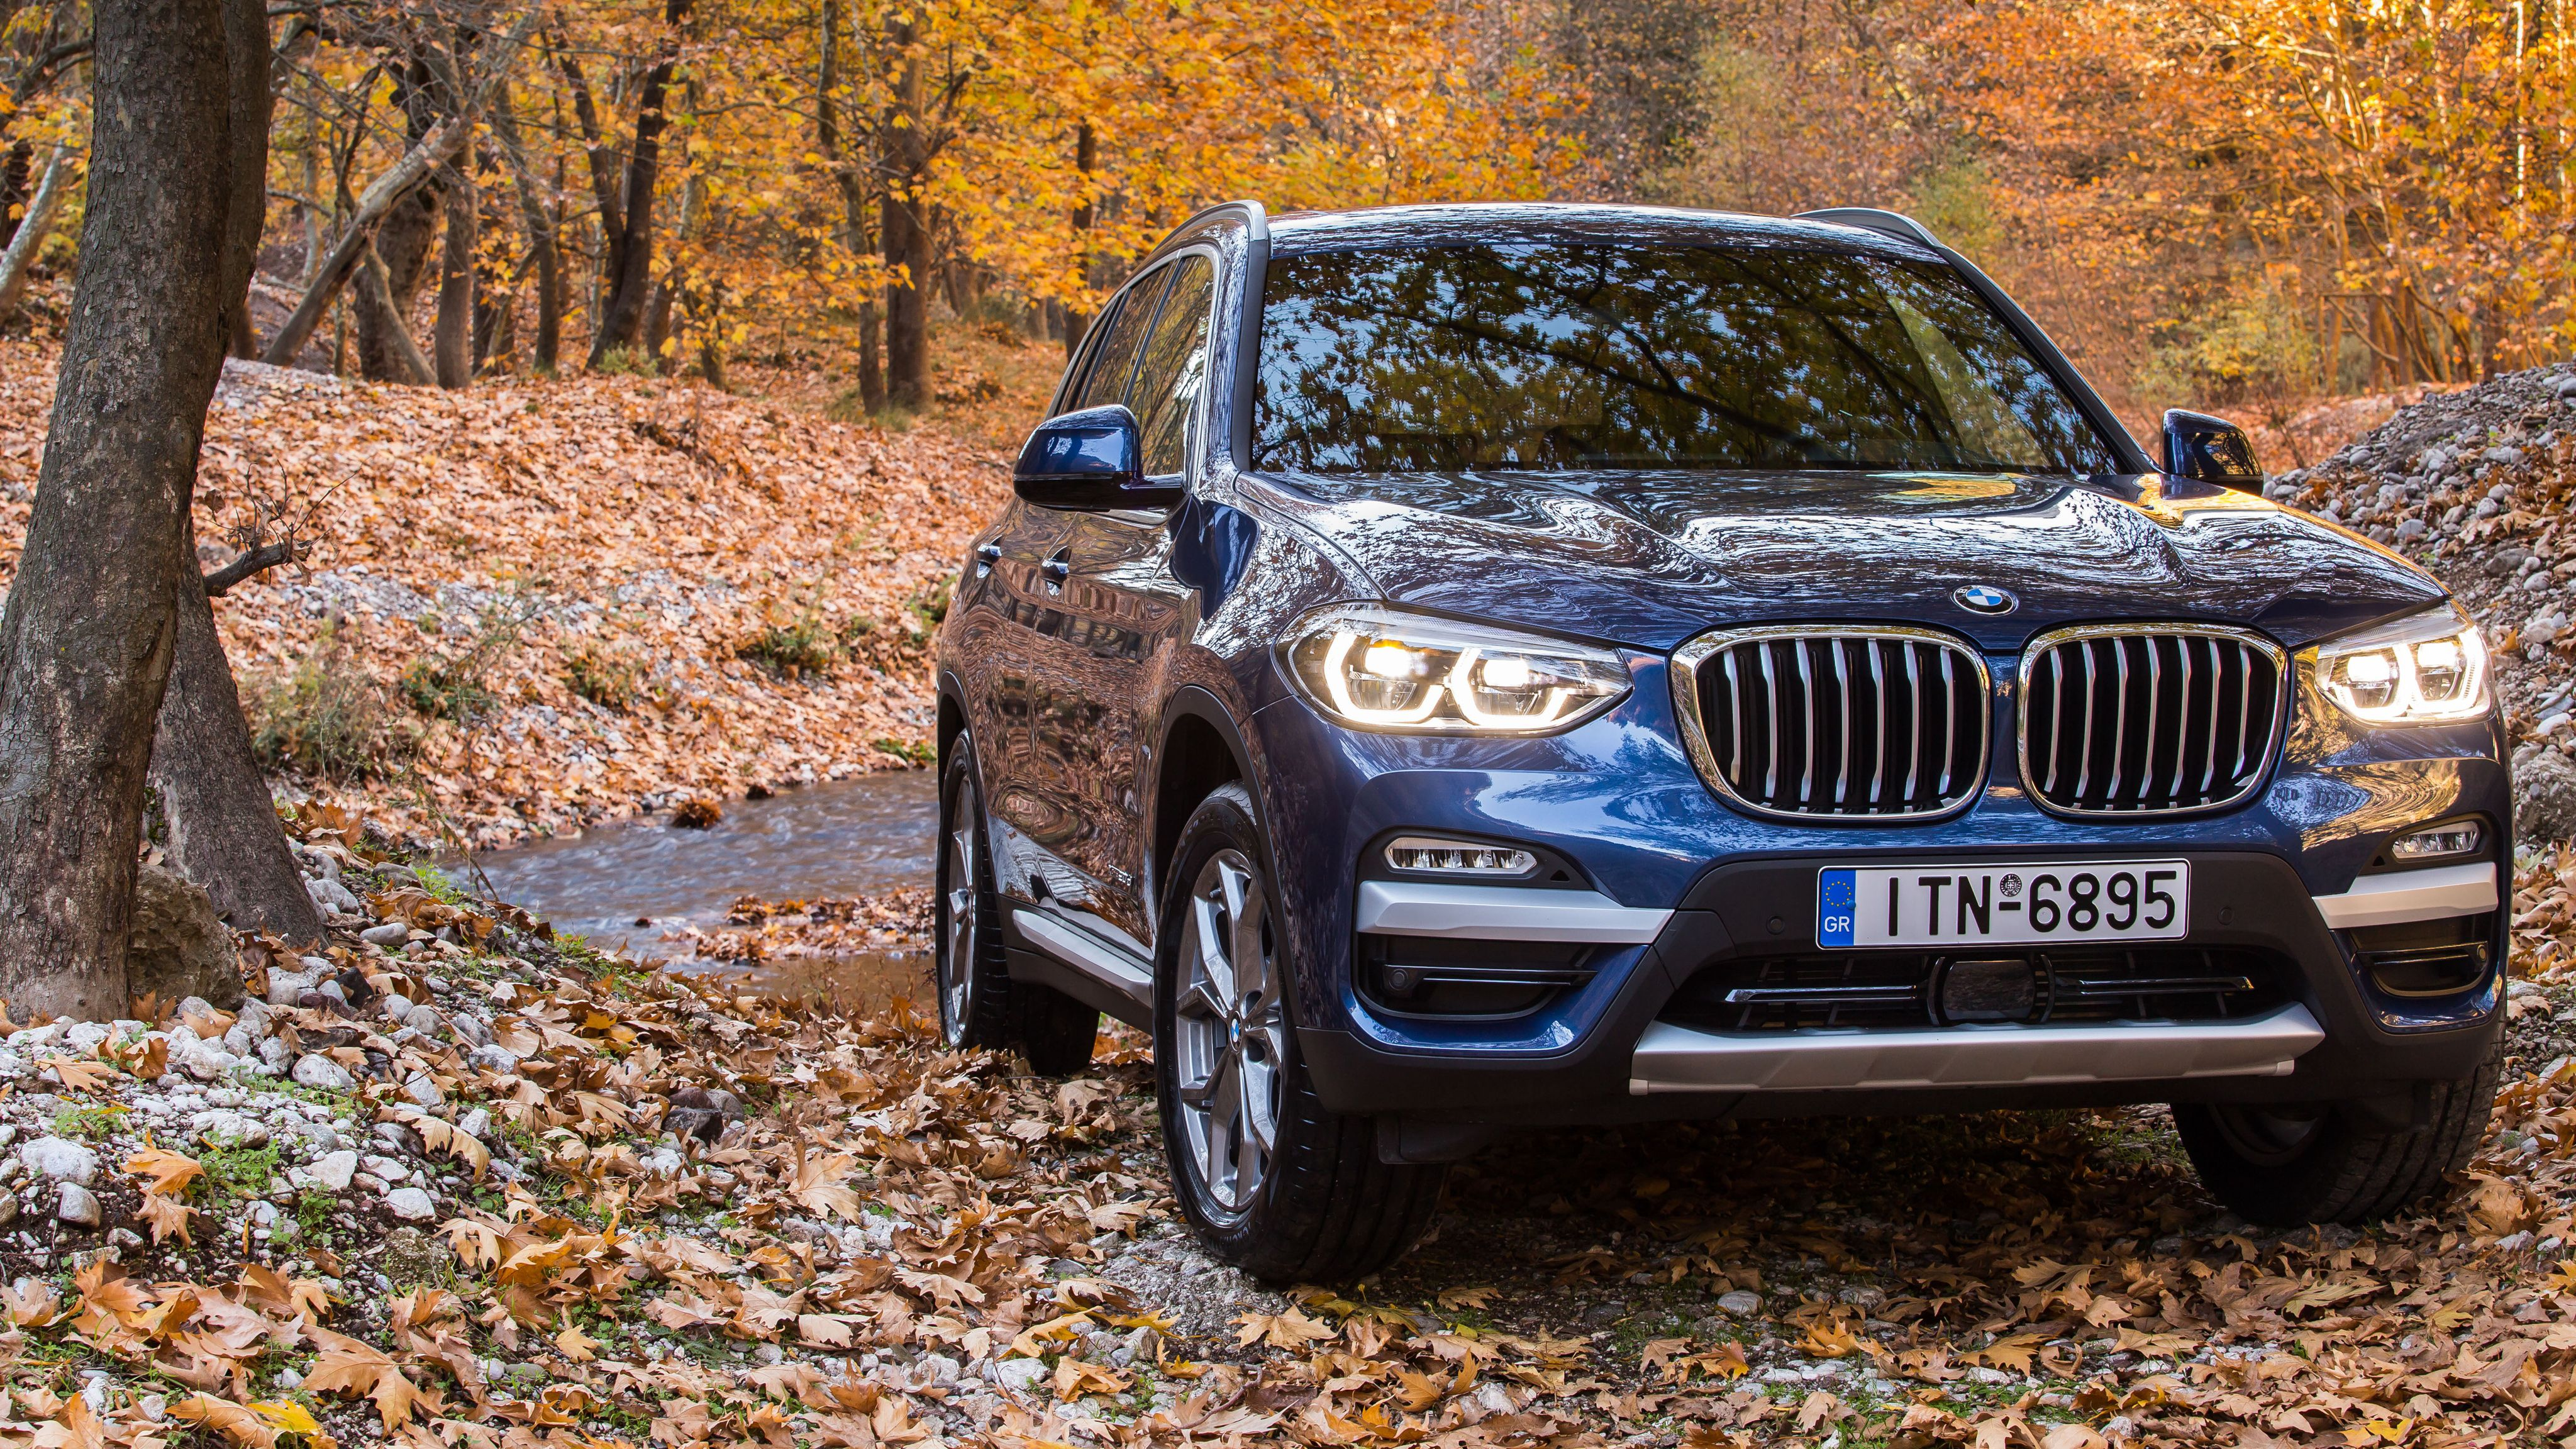 BMW X3 Wallpapers - Top Free BMW X3 Backgrounds ...